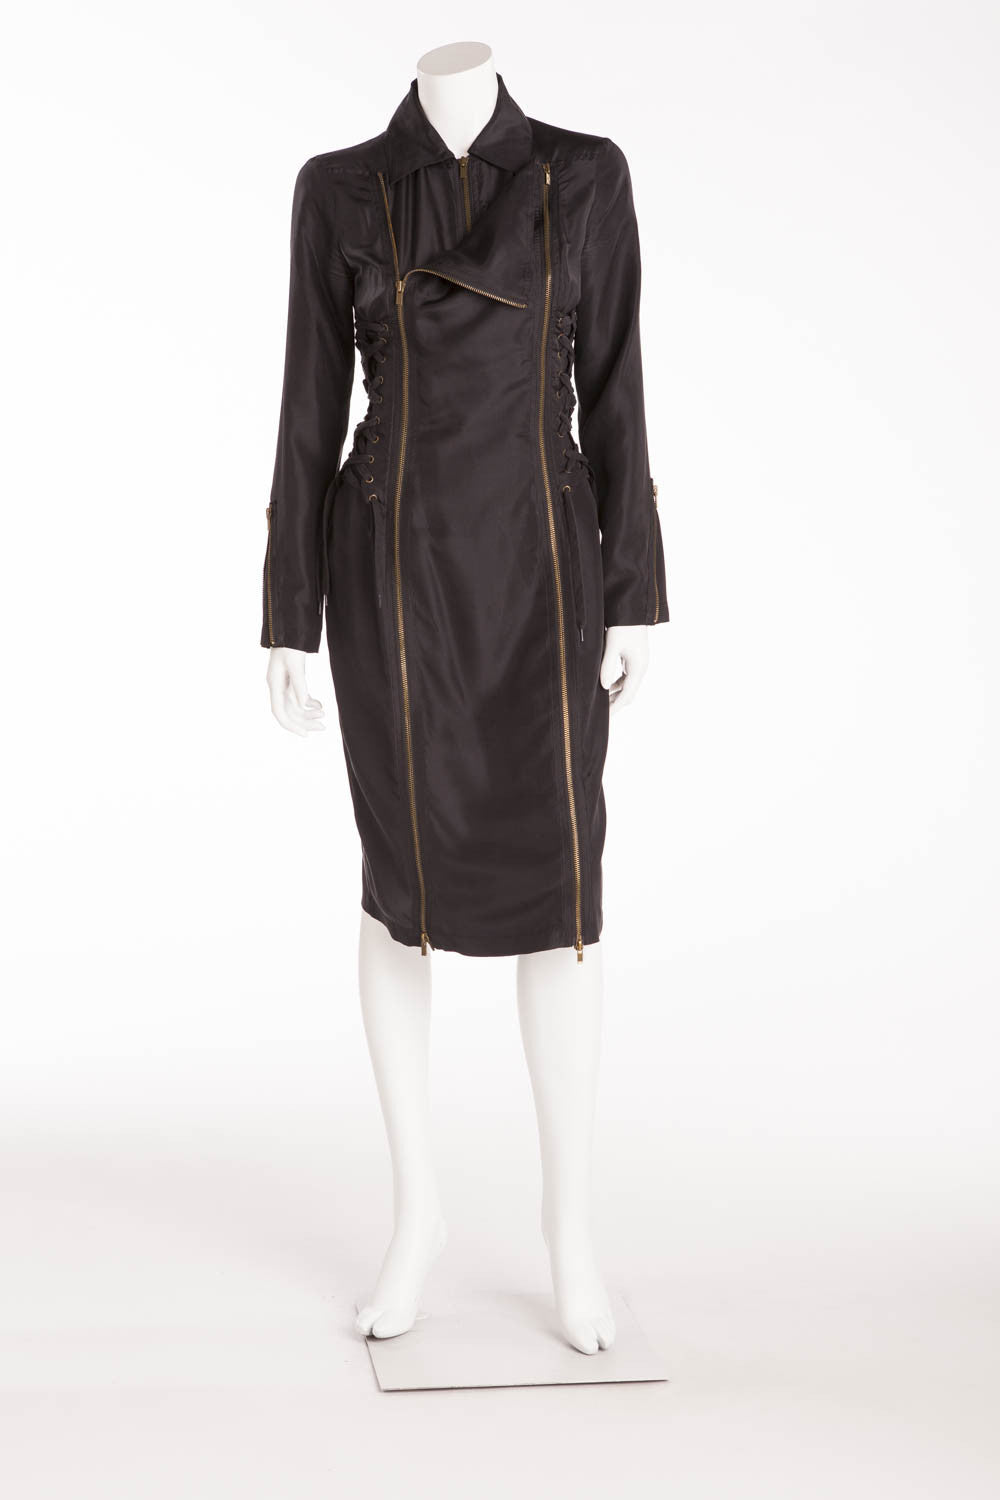 Chloe - Black Long Sleeve Dress with Gold Zippers - IT 42